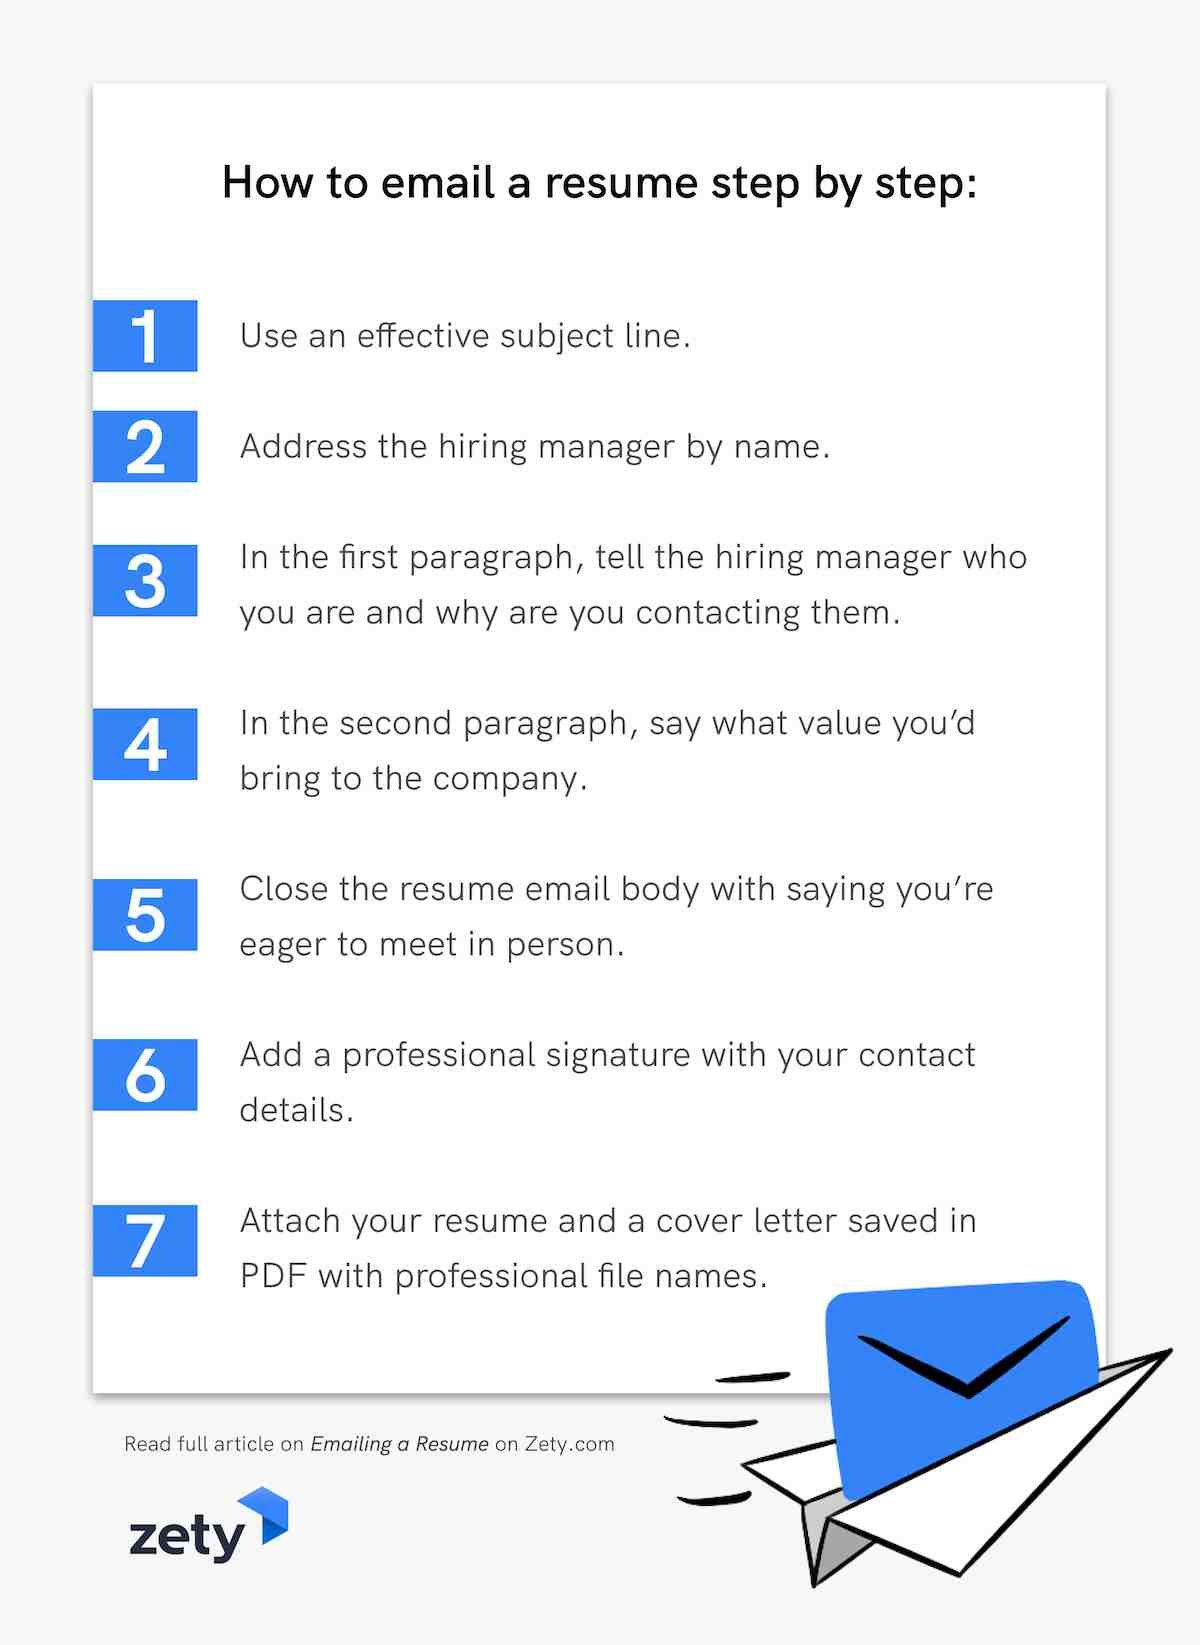 emailing resume job application email samples subject to step by youth care worker sample Resume Job Resume Email Subject